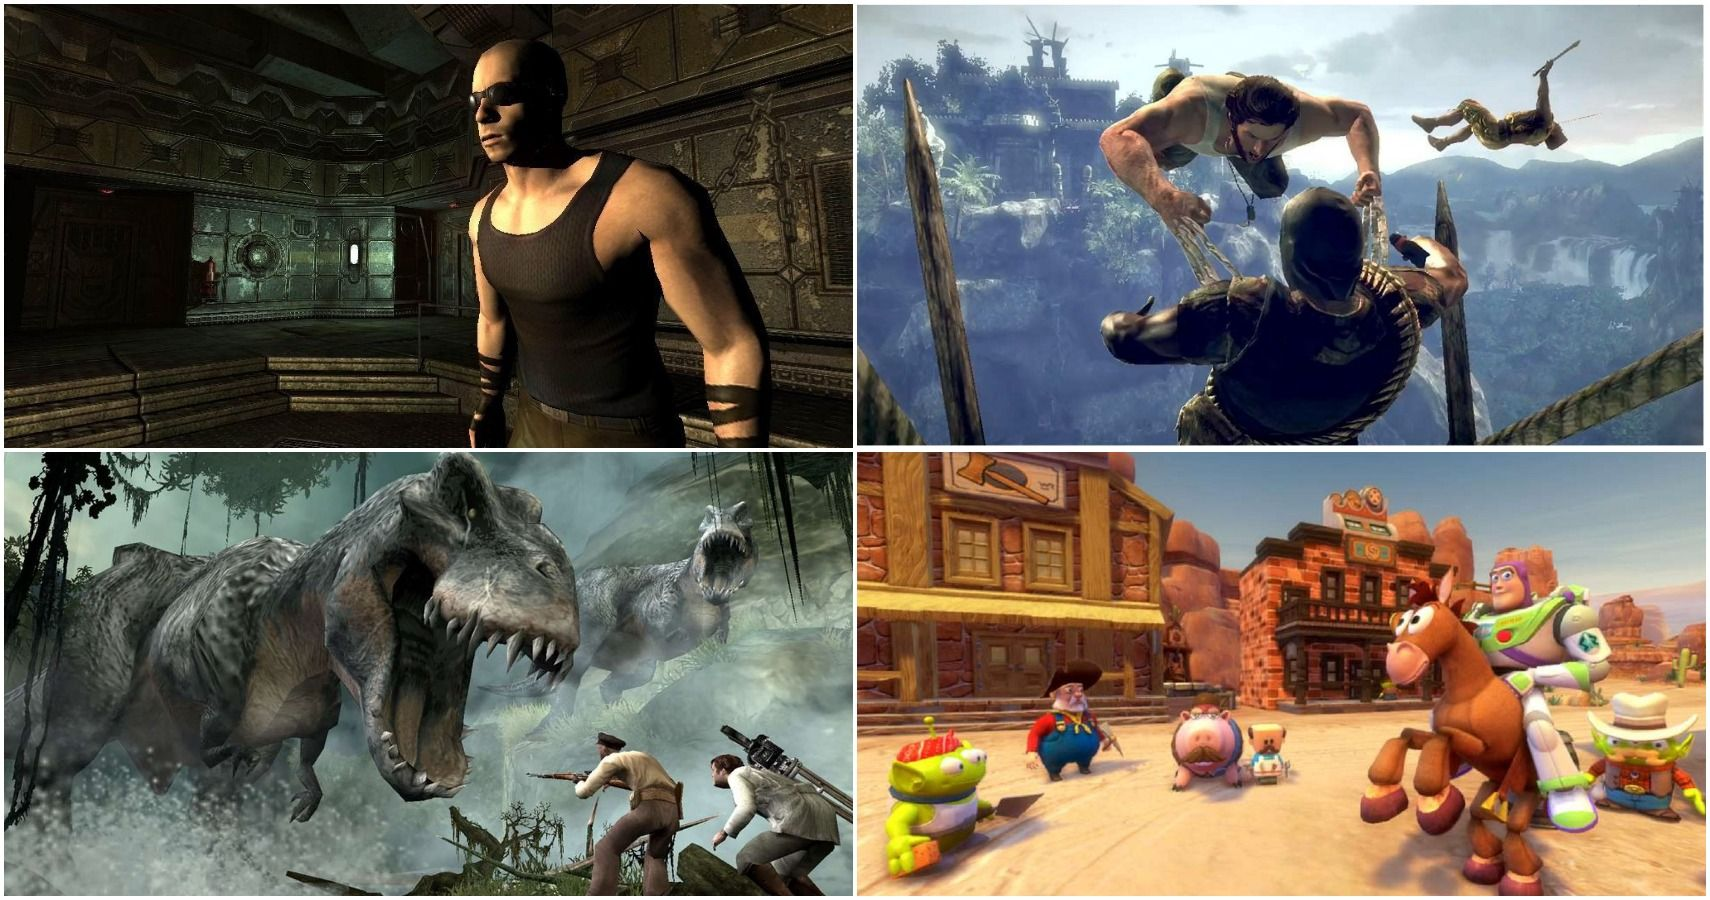 10 Movie-Based Video Games (That Are Better Than The Movie)